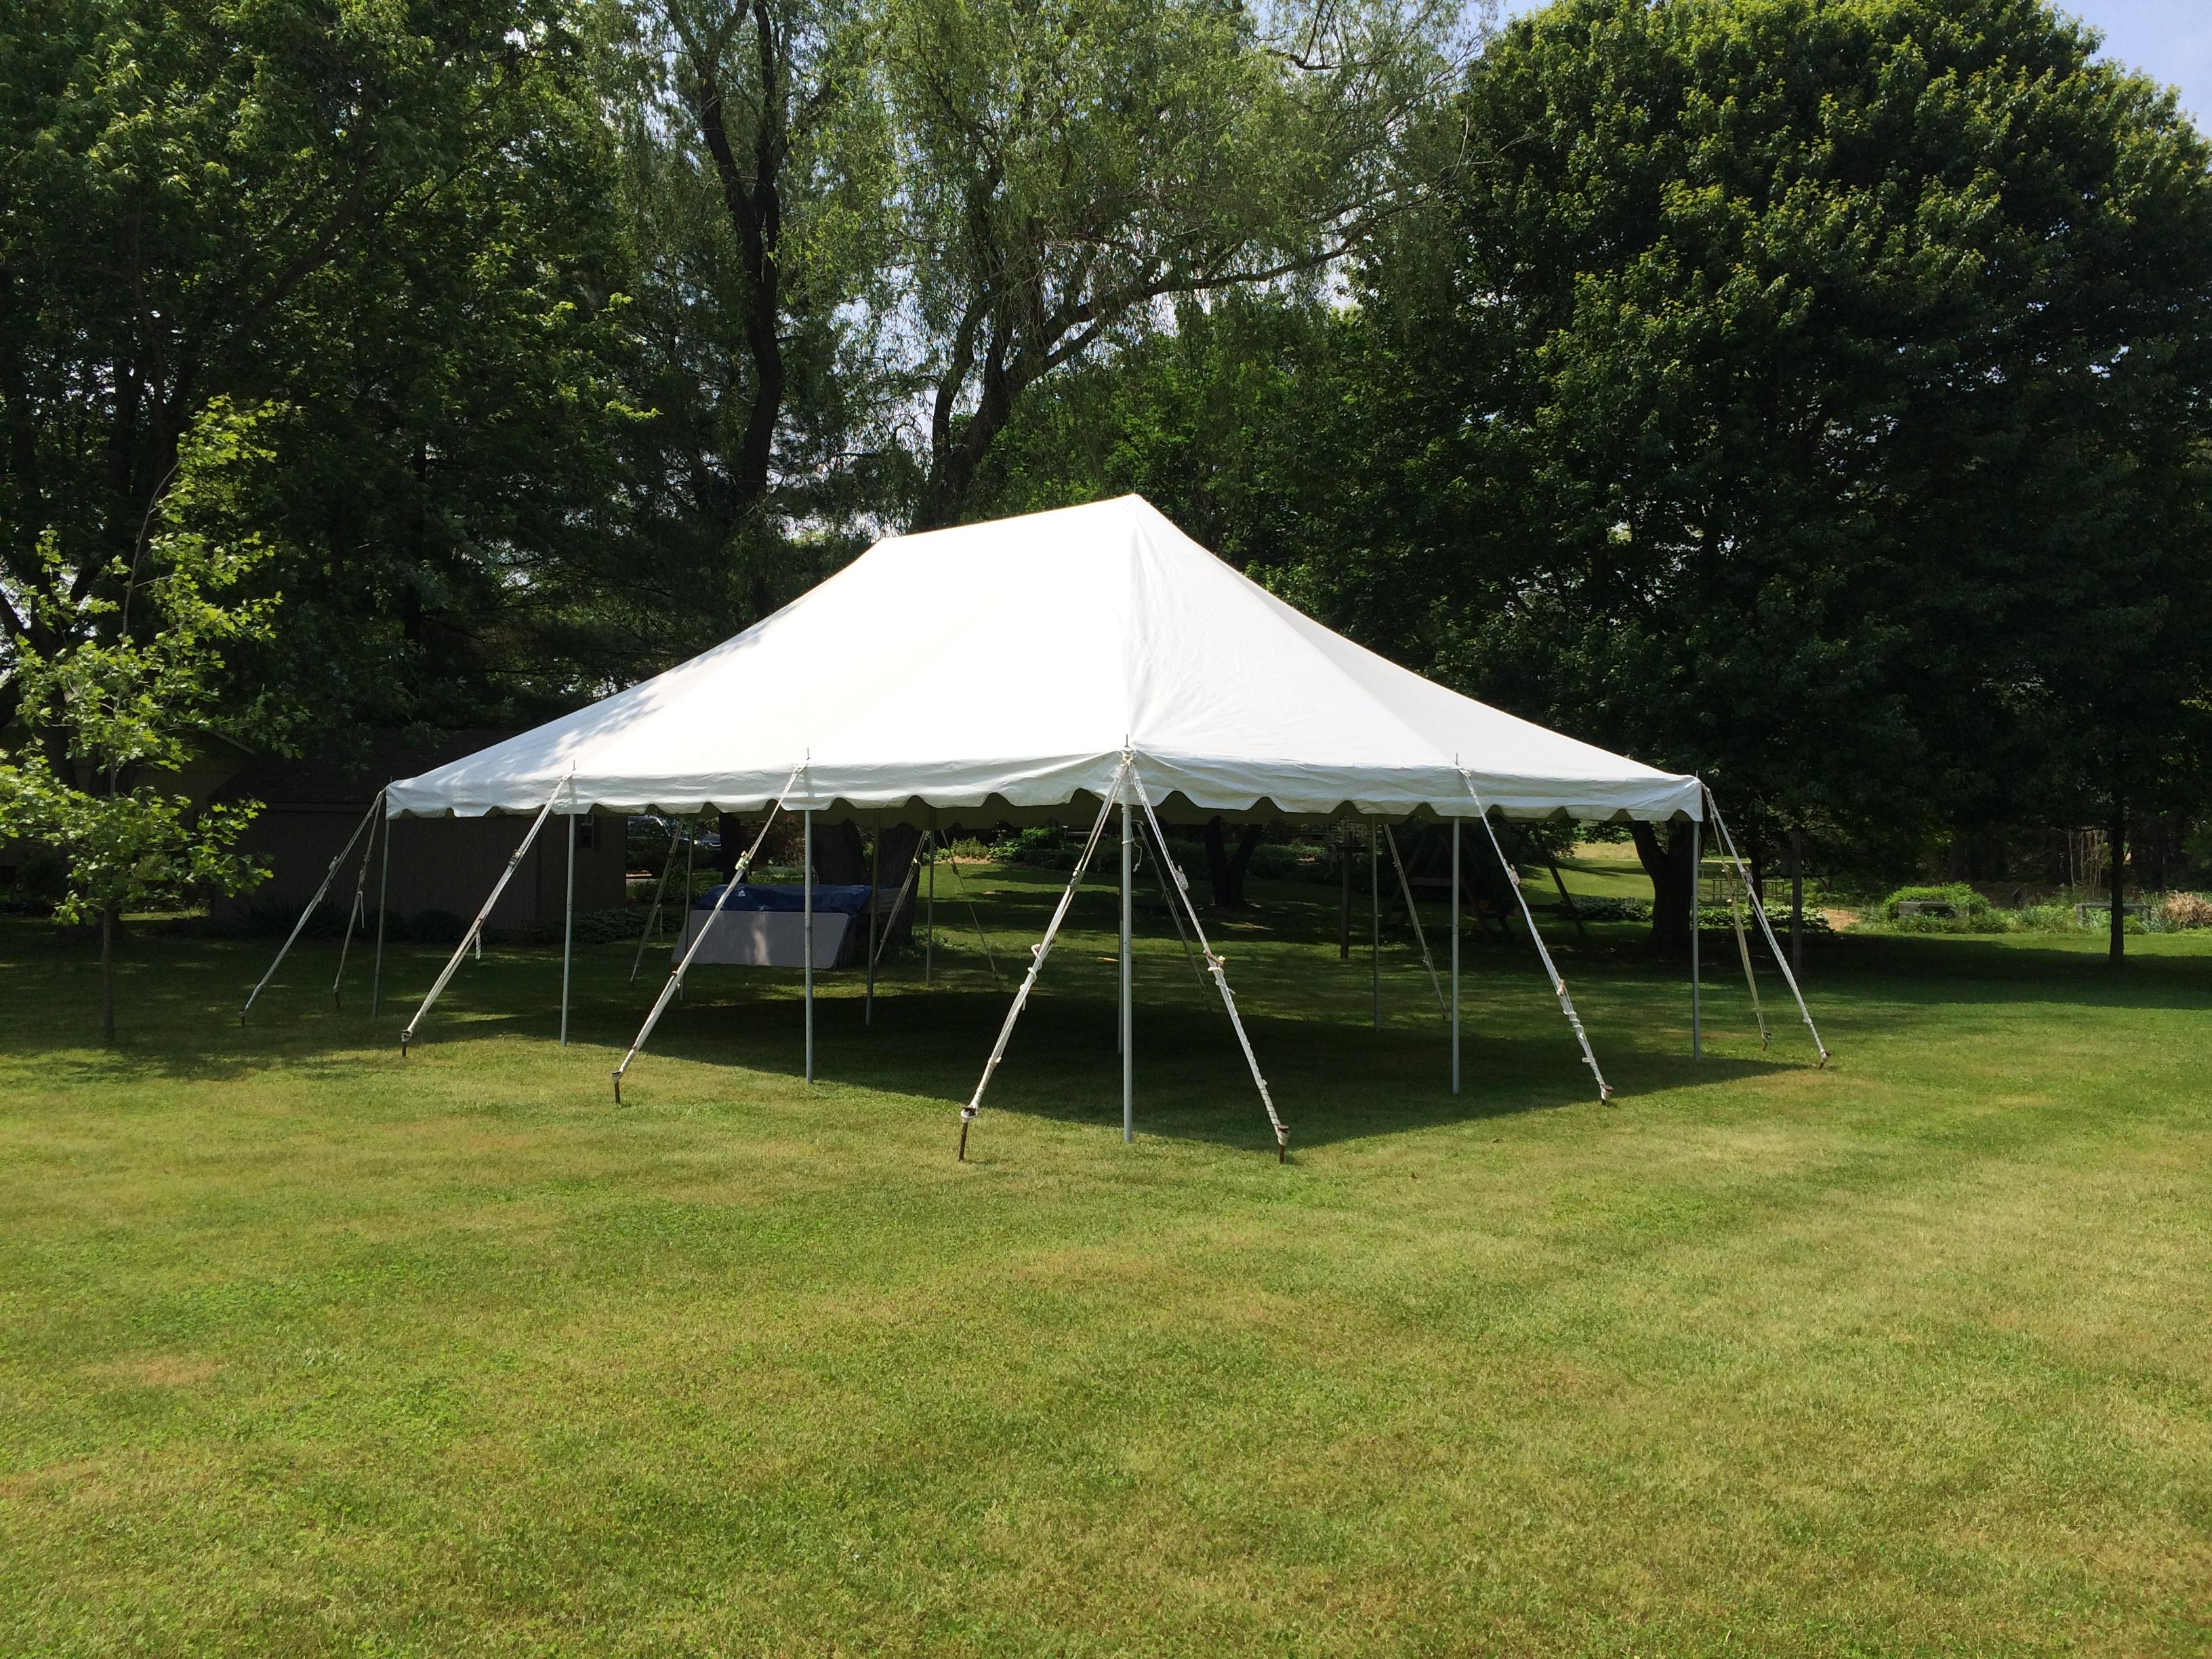 Karcher Event Rental Llc Tents Tables Chairs And